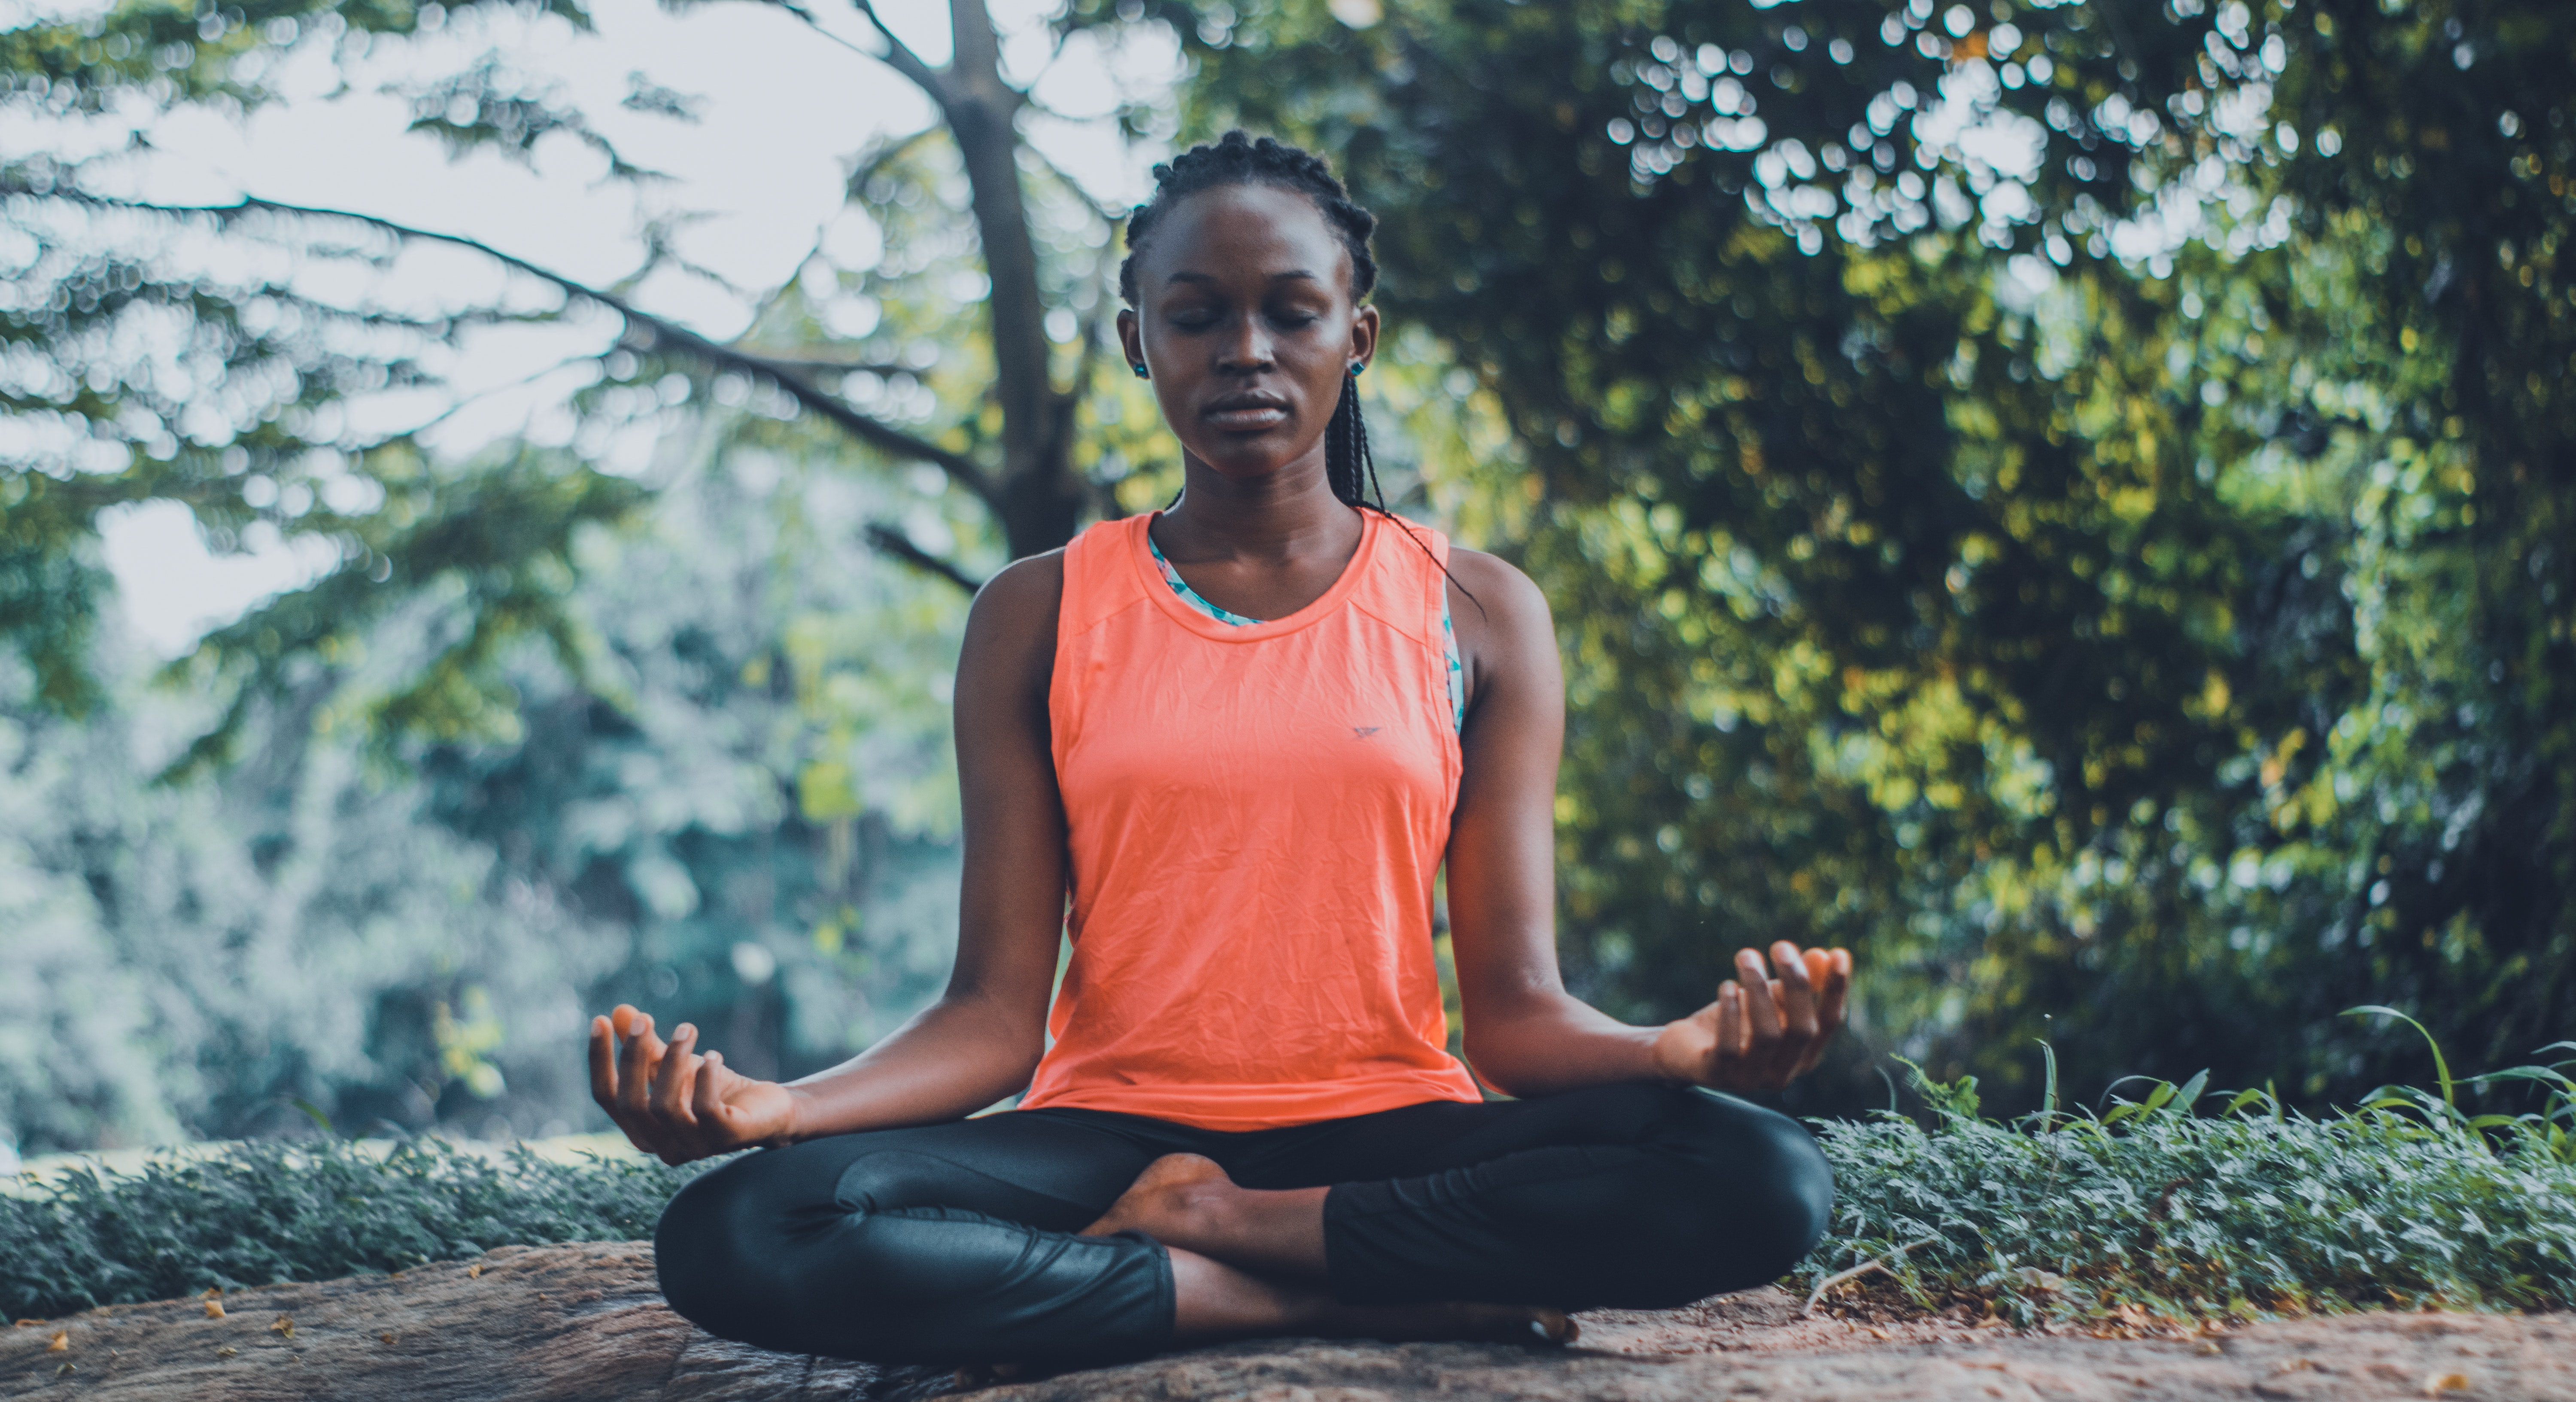 Take Five for Well-Being